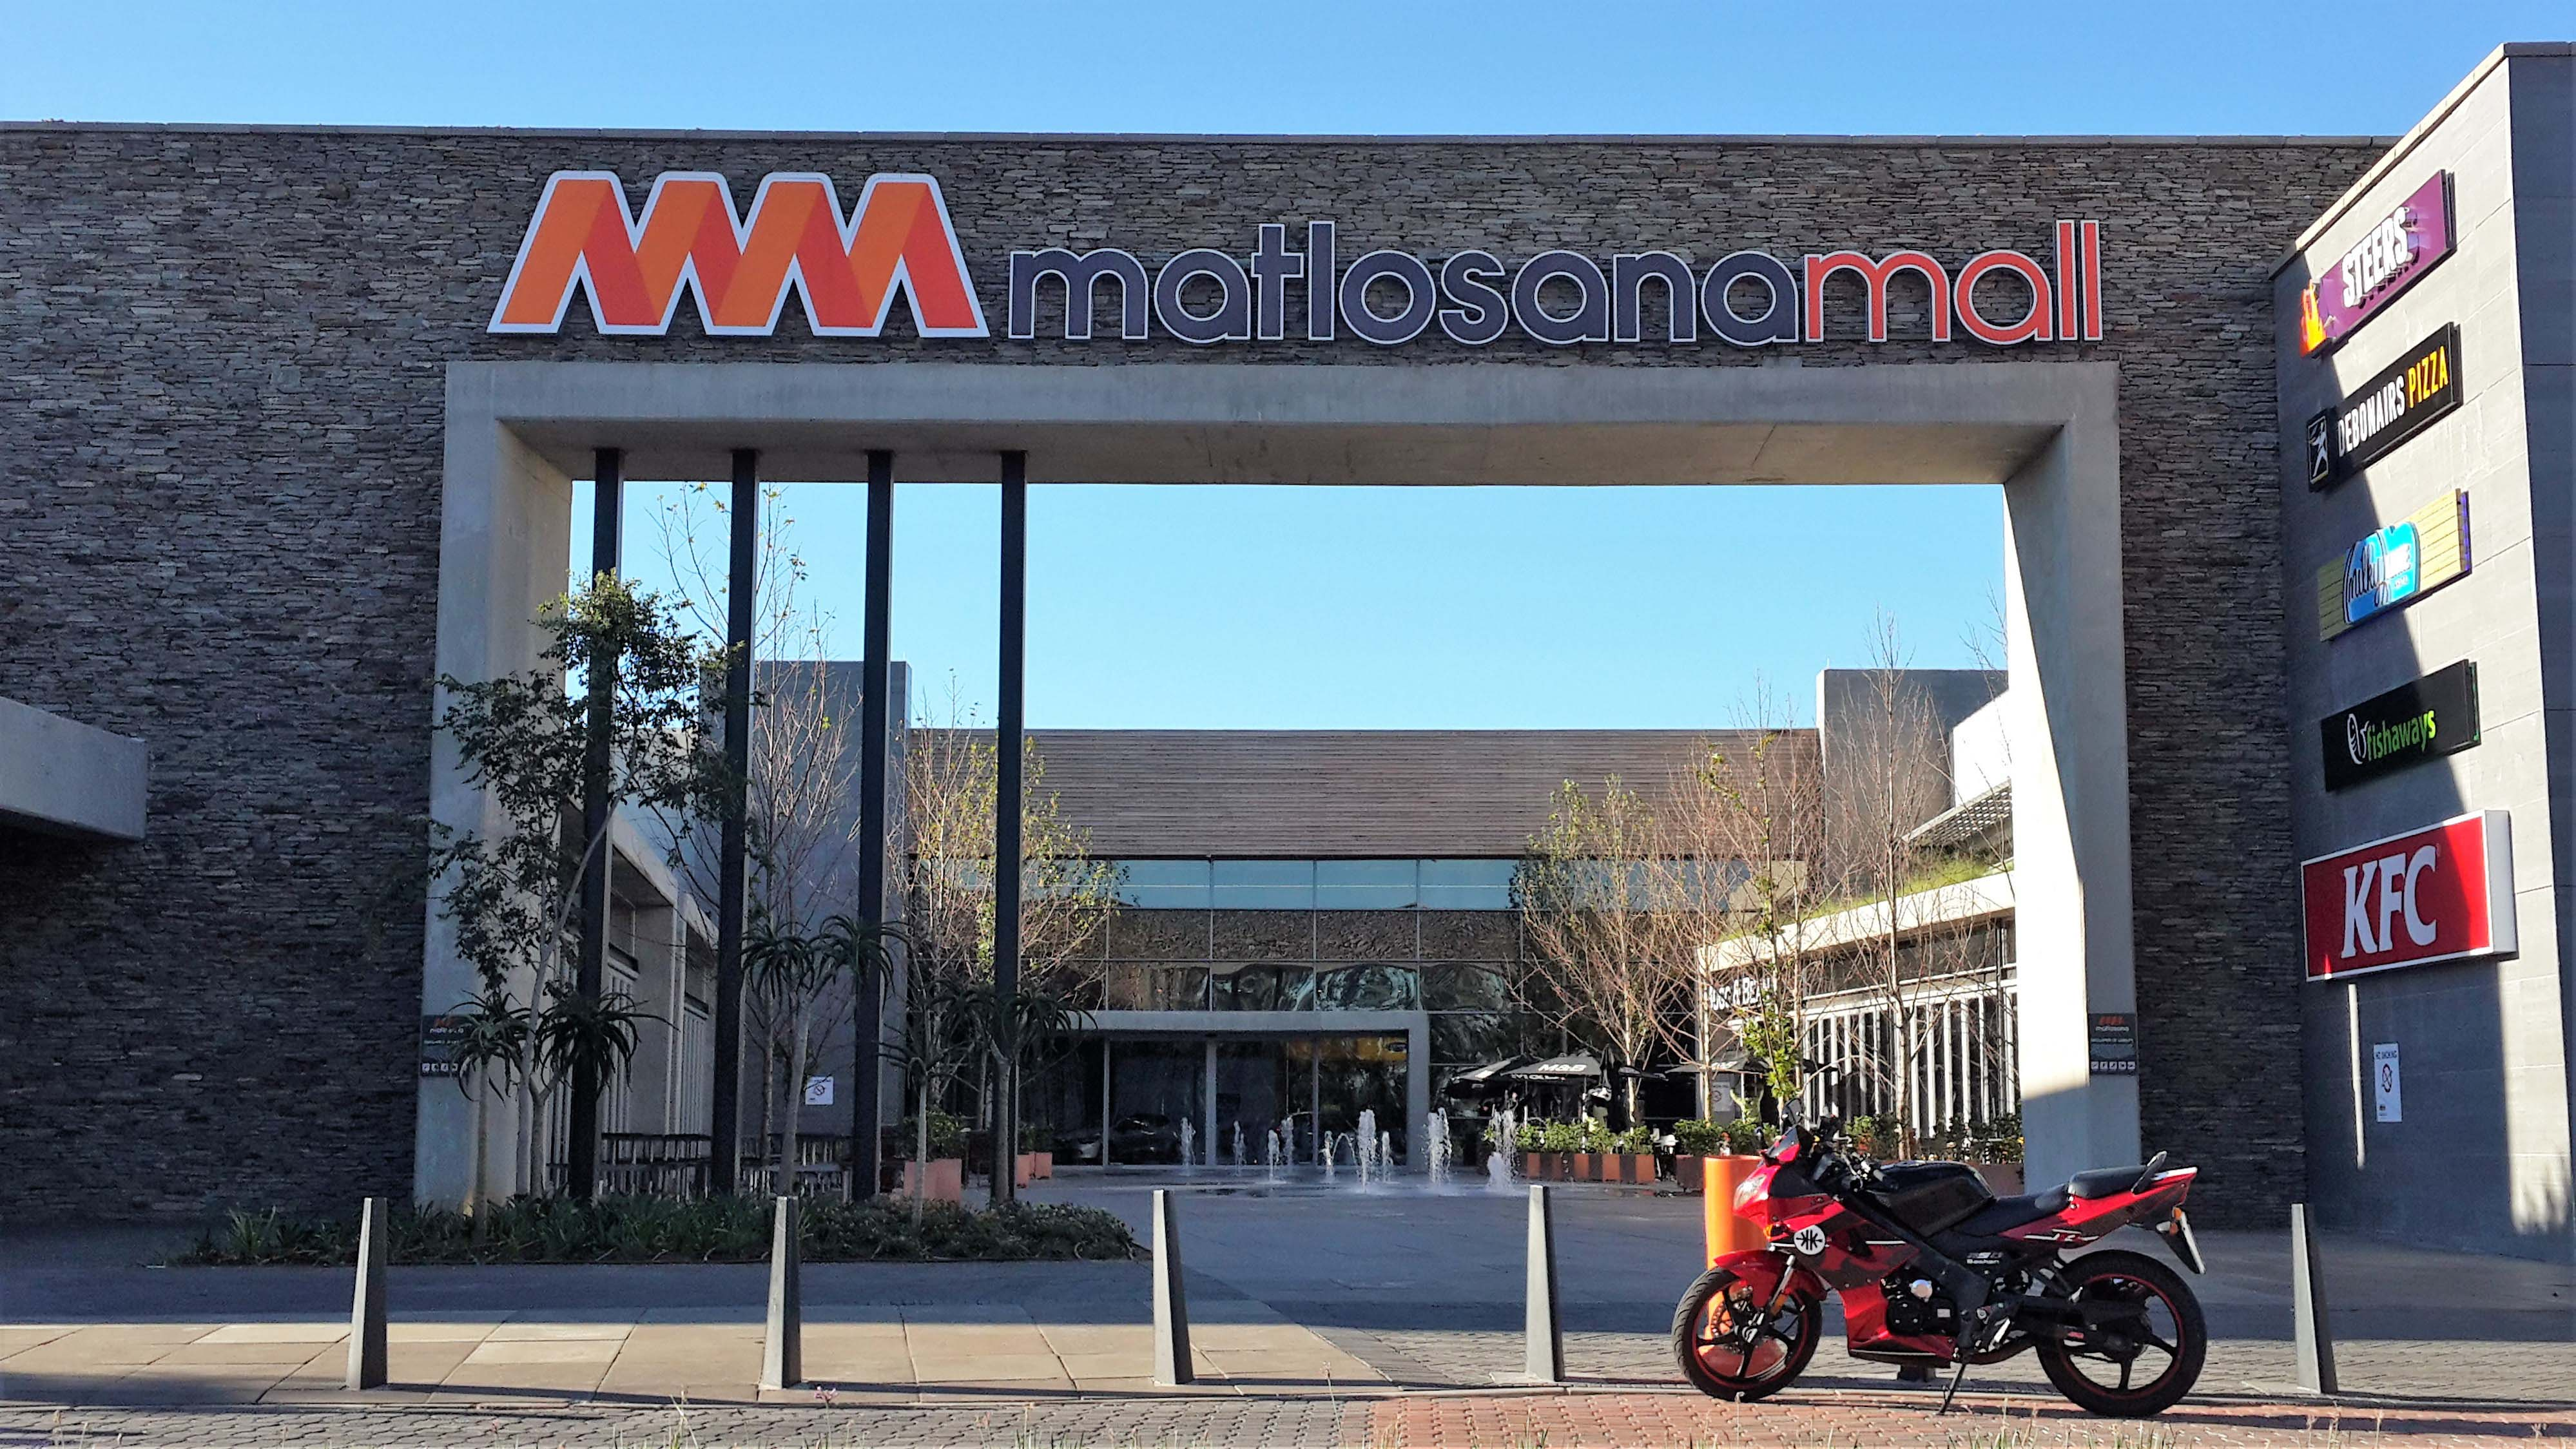 SE Controls keeps shoppers safe at the new Matlosana Mall in South Africa